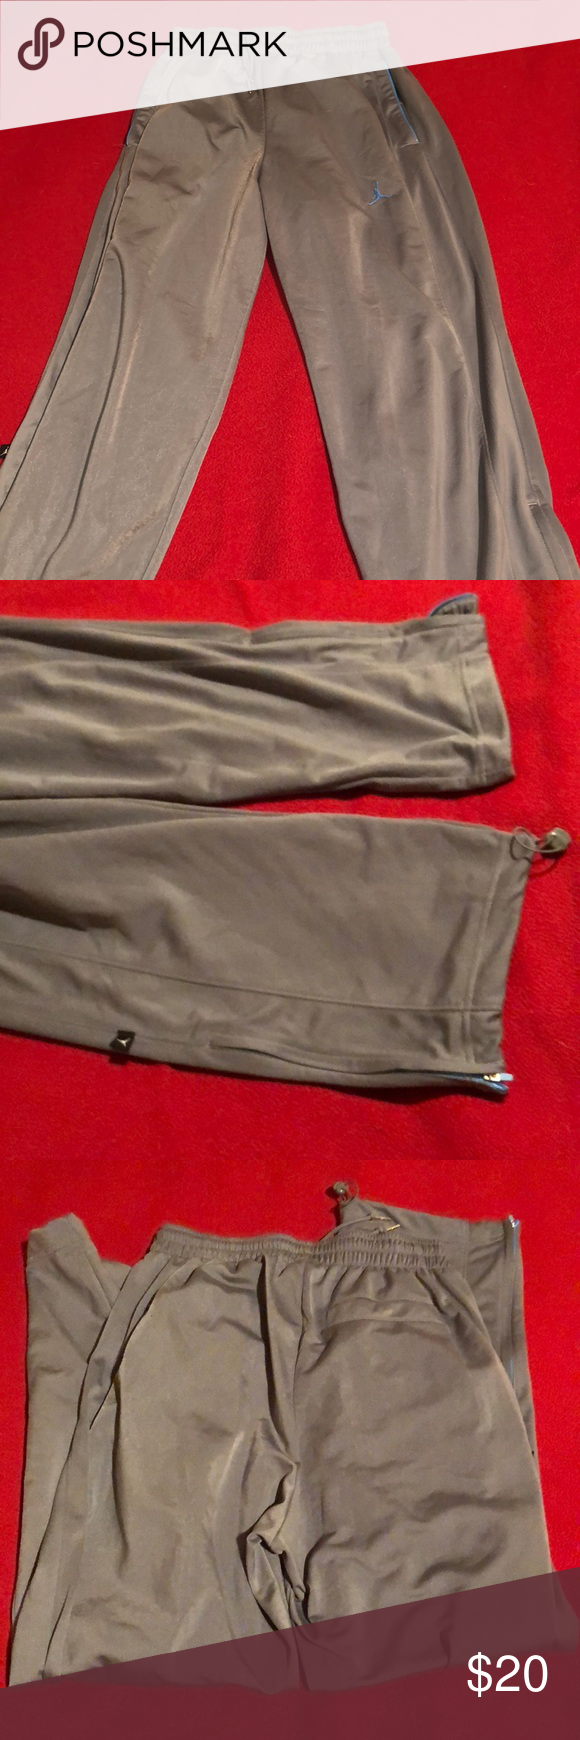 be5a37eb319596 Jordan Dri-Fit Pants - Size Large Used Jordan Dri-Fit pants. Cool gray   Carolina  blue. Jordan Pants Sweatpants   Joggers